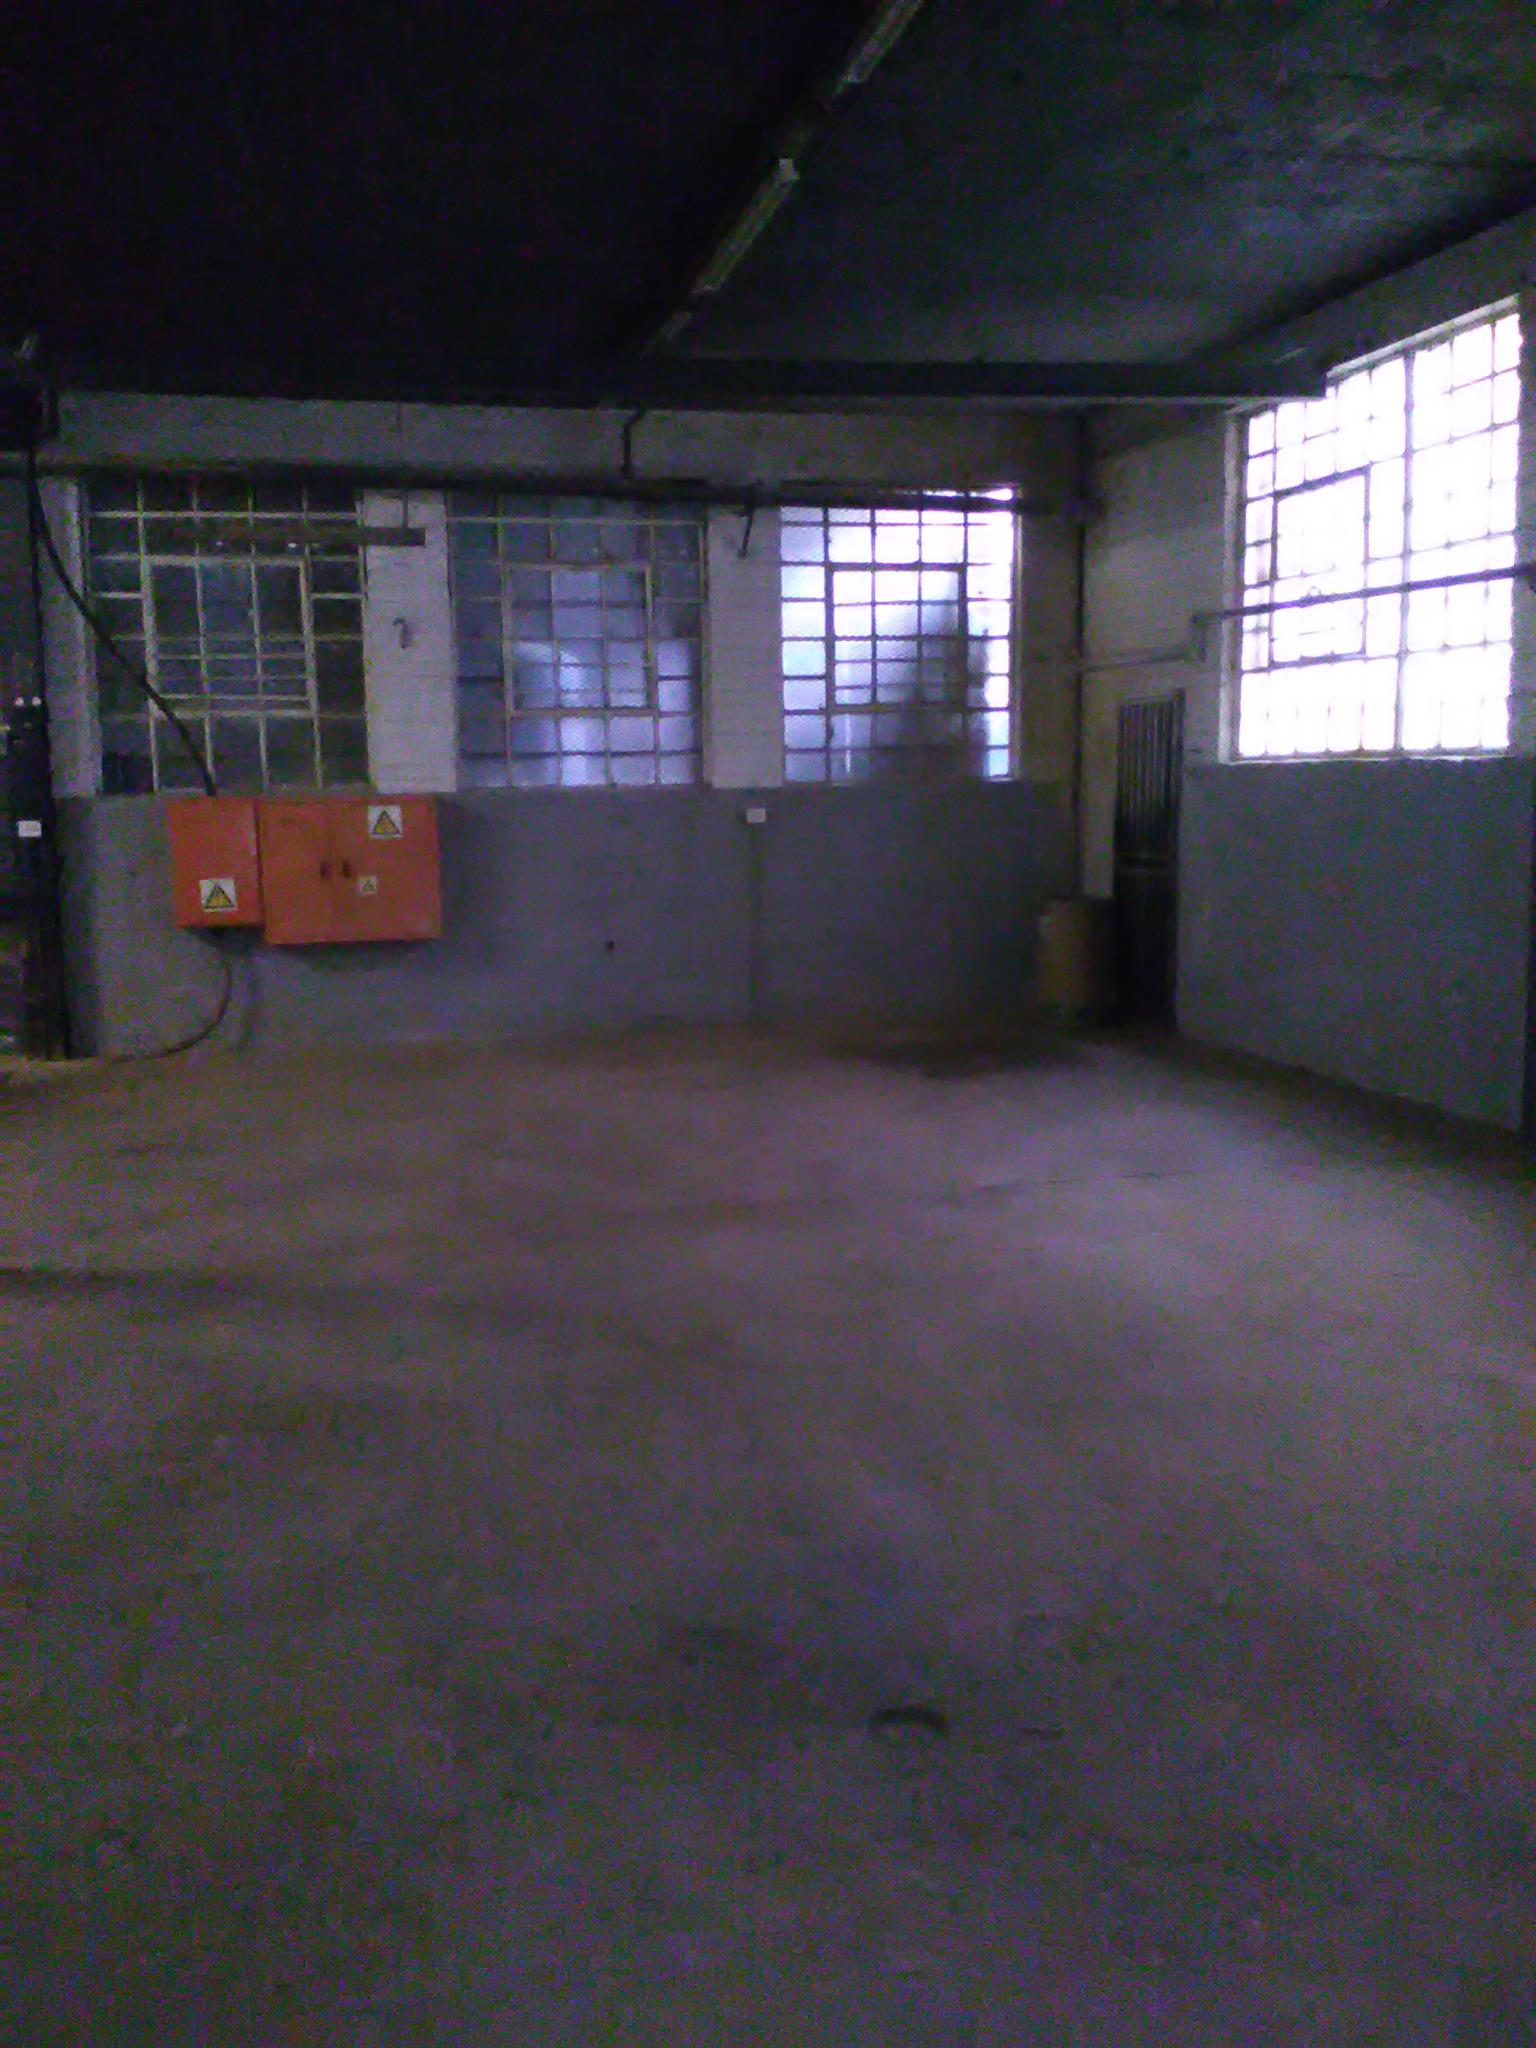 478m2 factory for sale in Knights, Germiston